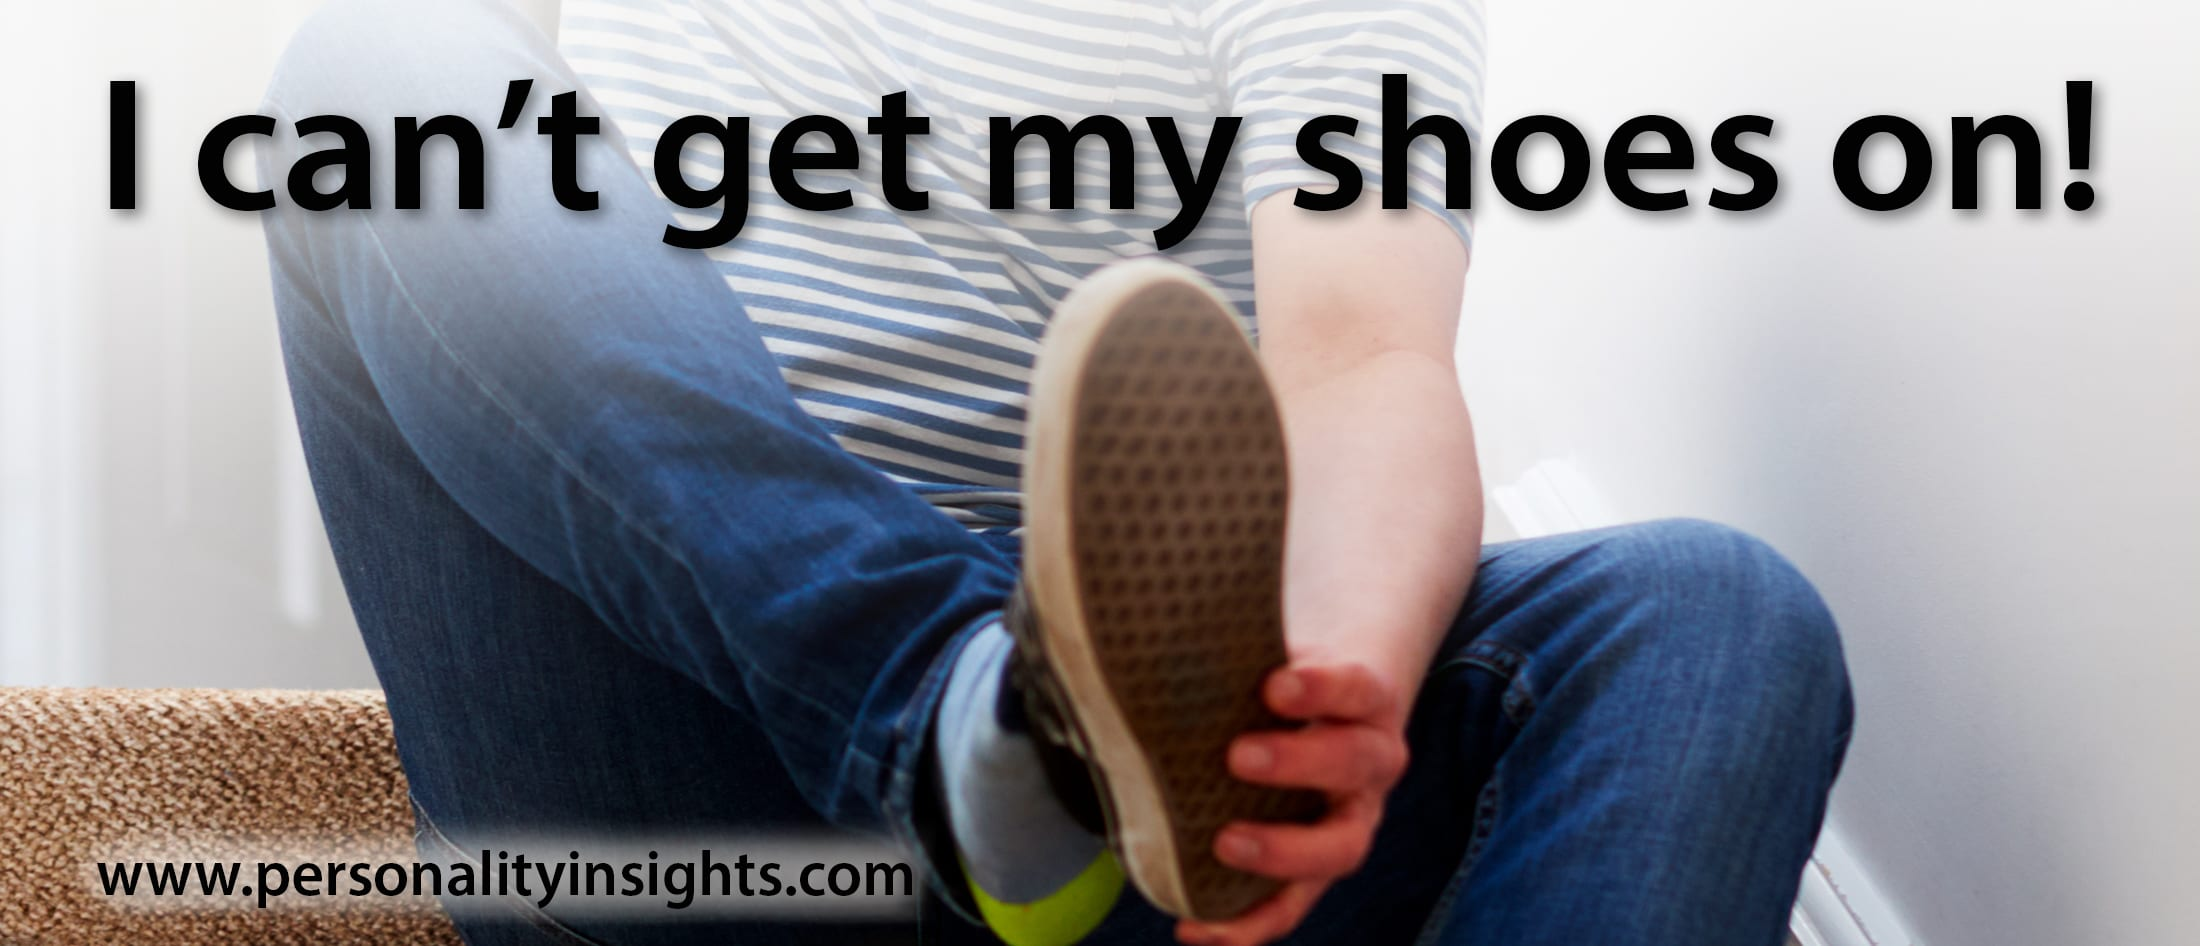 Tip: I can't get my shoes on!